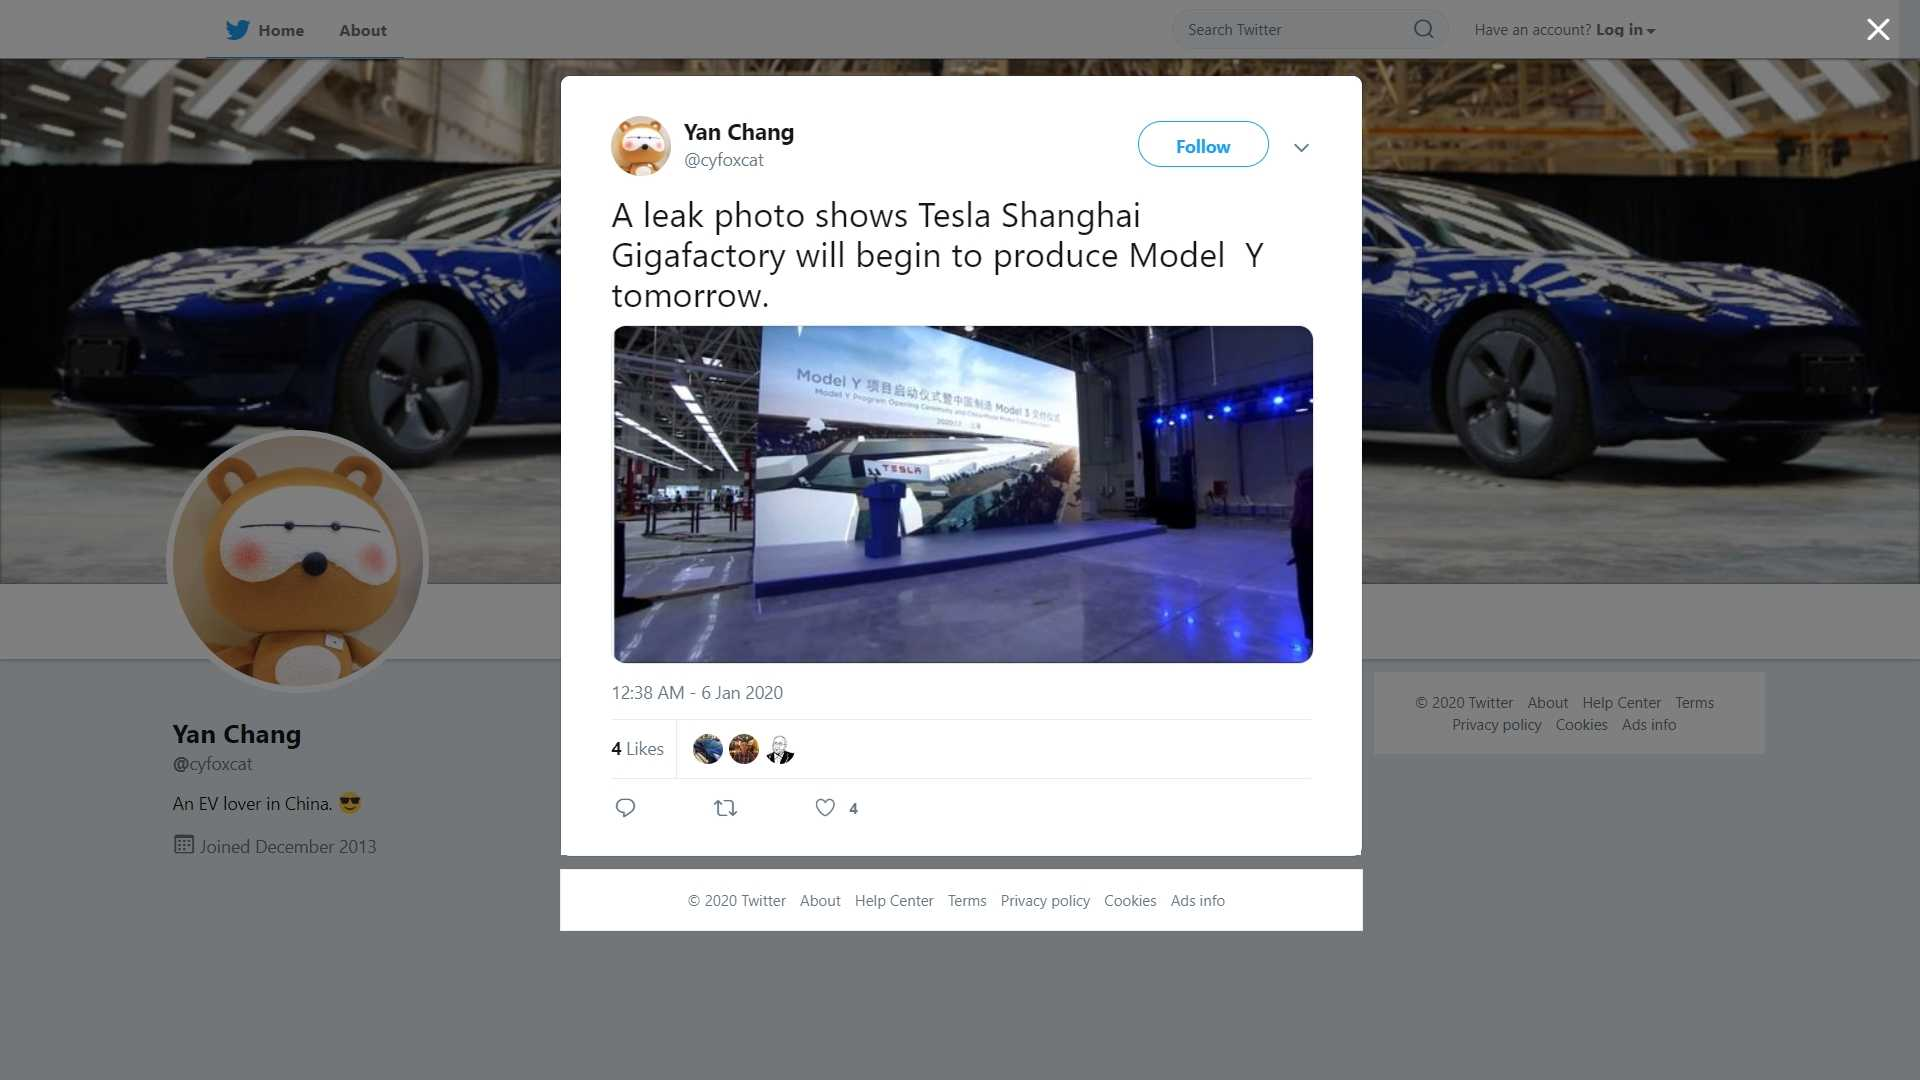 Tesla Model Y Production May Begin In China On January 7